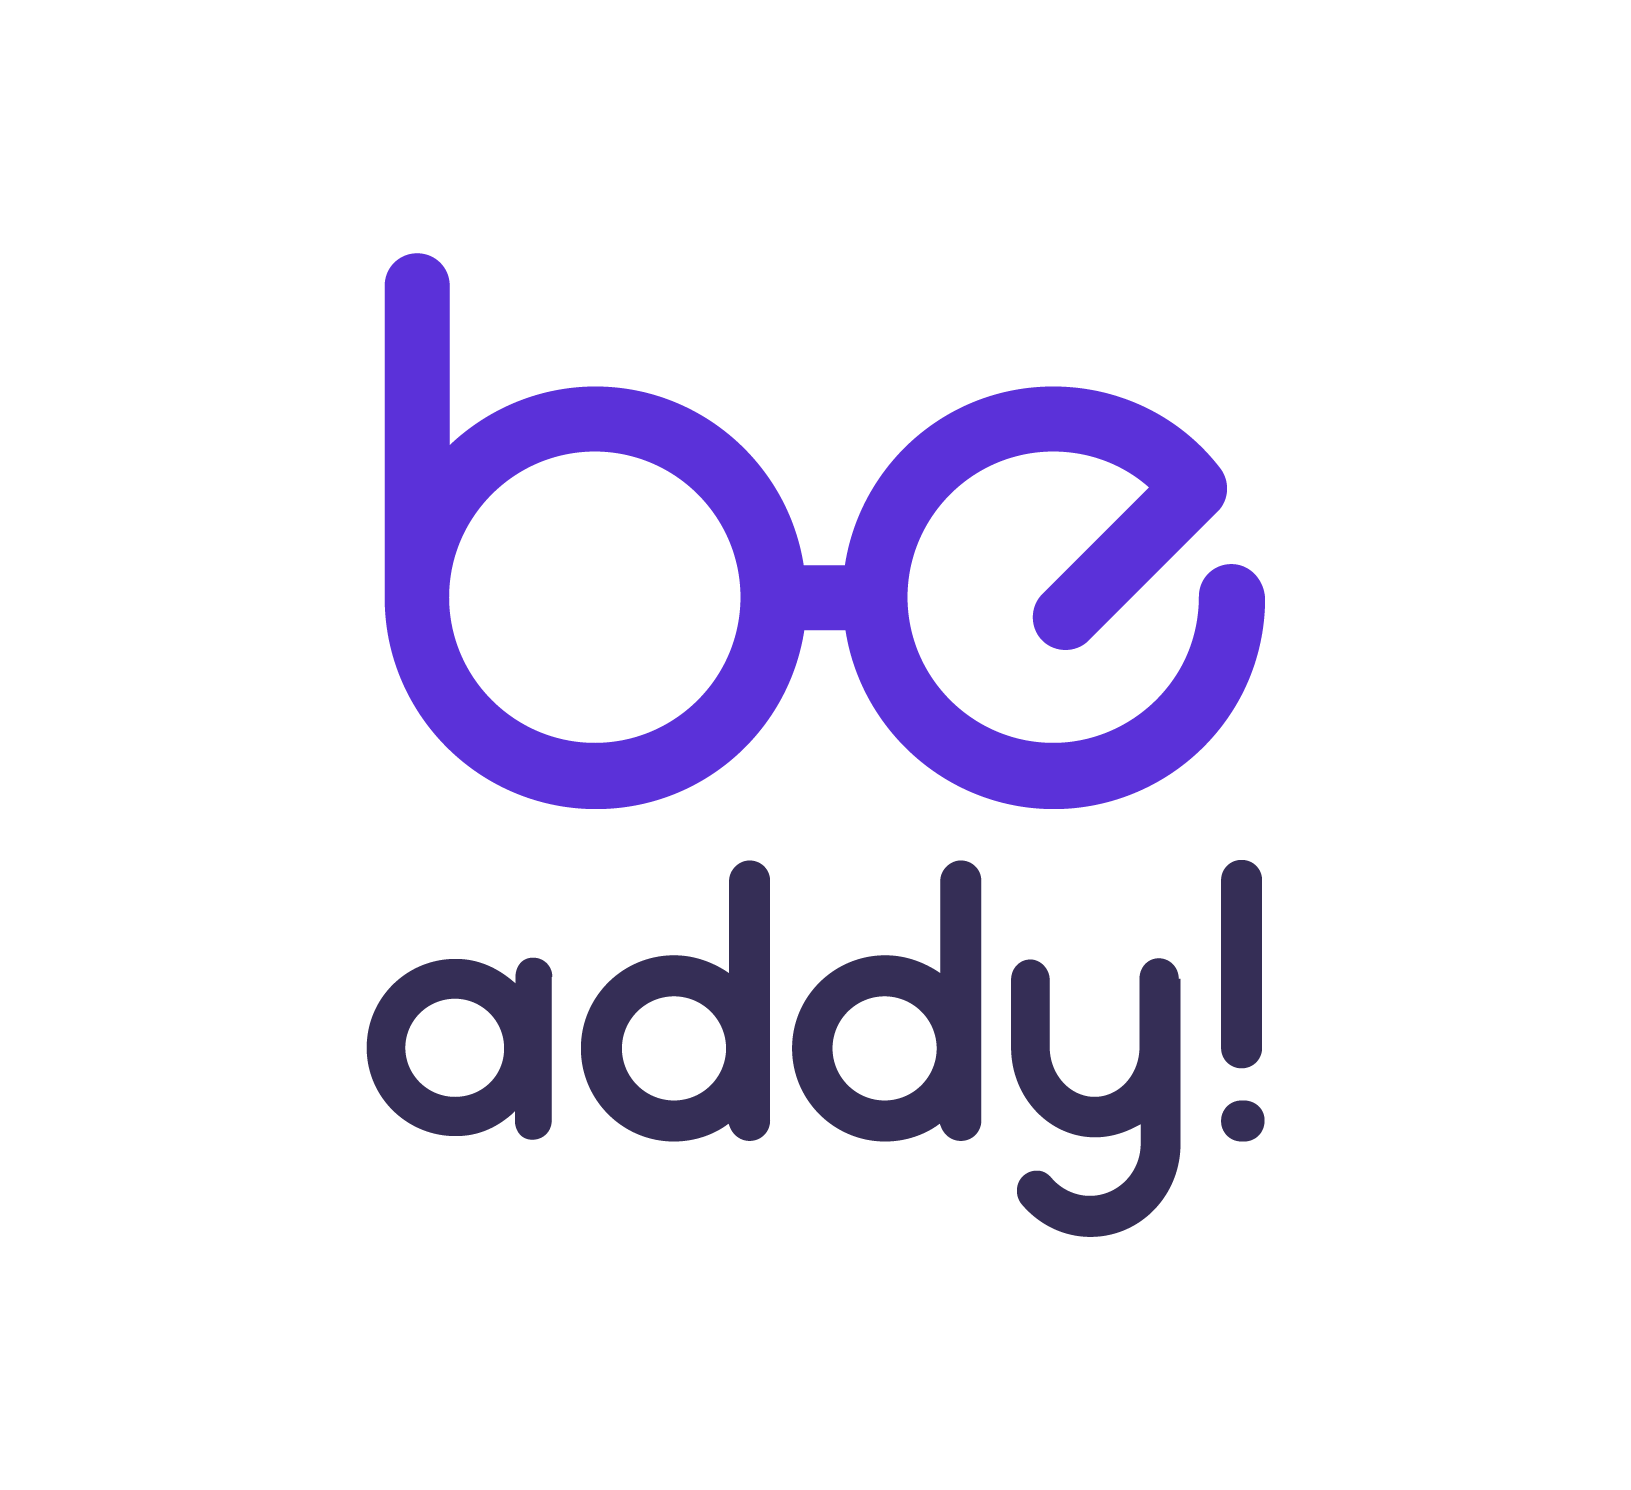 Be-Addy icon